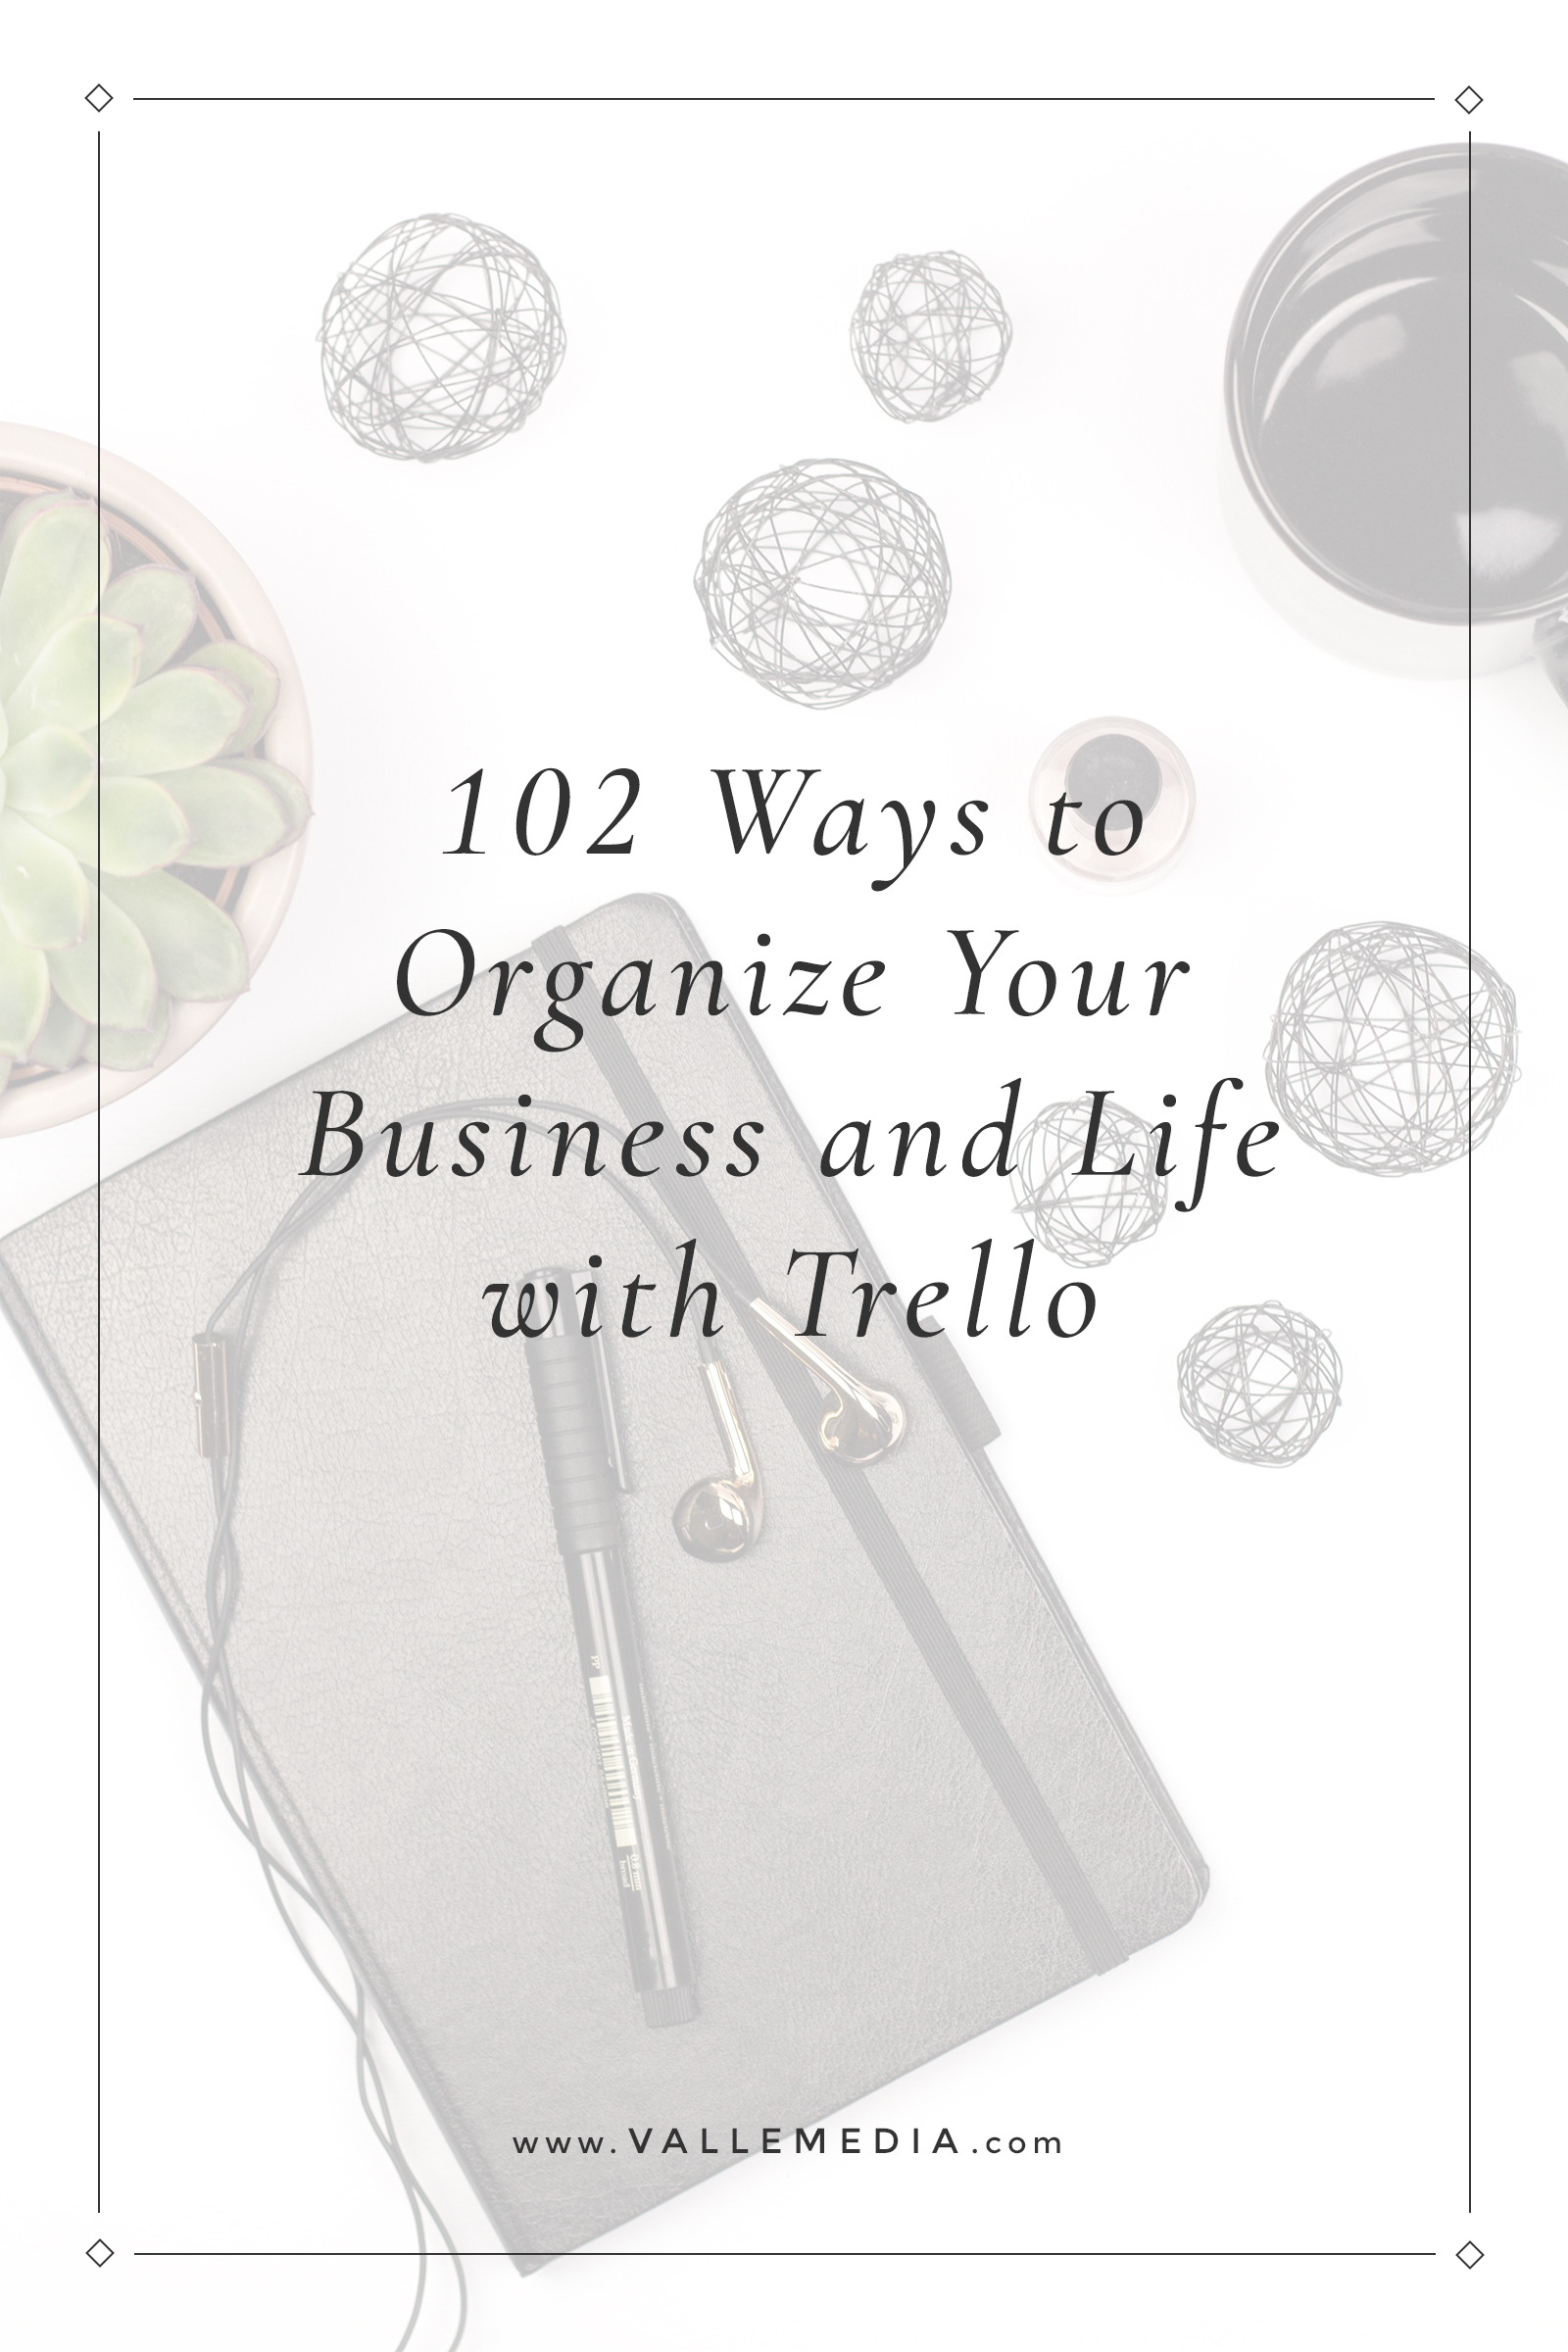 Between running a successful business and household, I need systems that work FOR me, not ones I'm stuck working in. Take a look at these 102 ways you can use Trello to organize, plan, and manage your business and life.